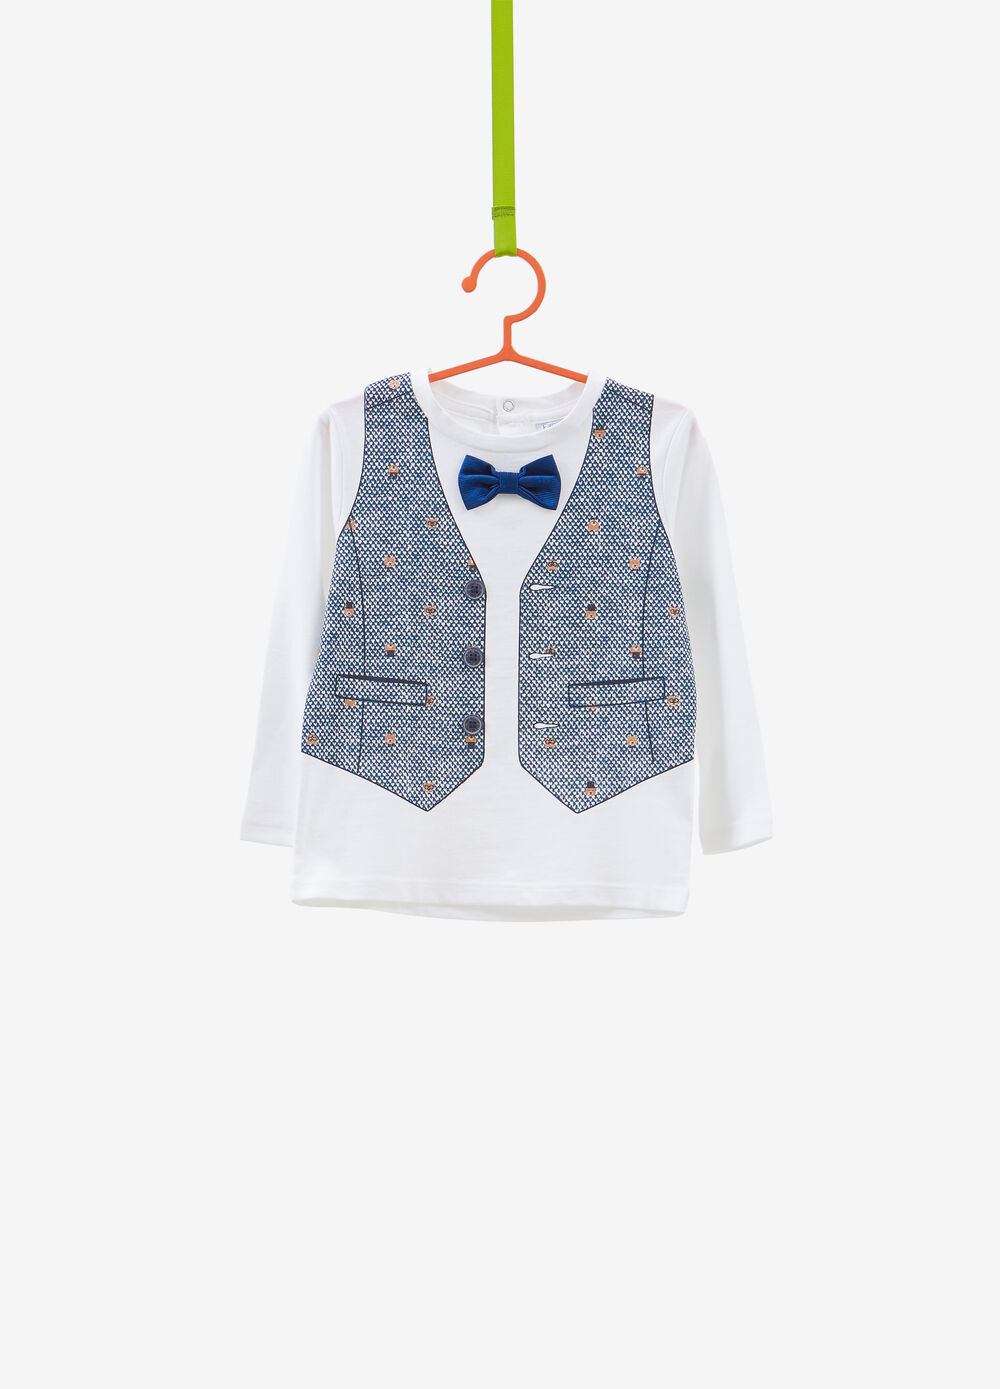 Cotton T-shirt with waistcoat with printed butterflies